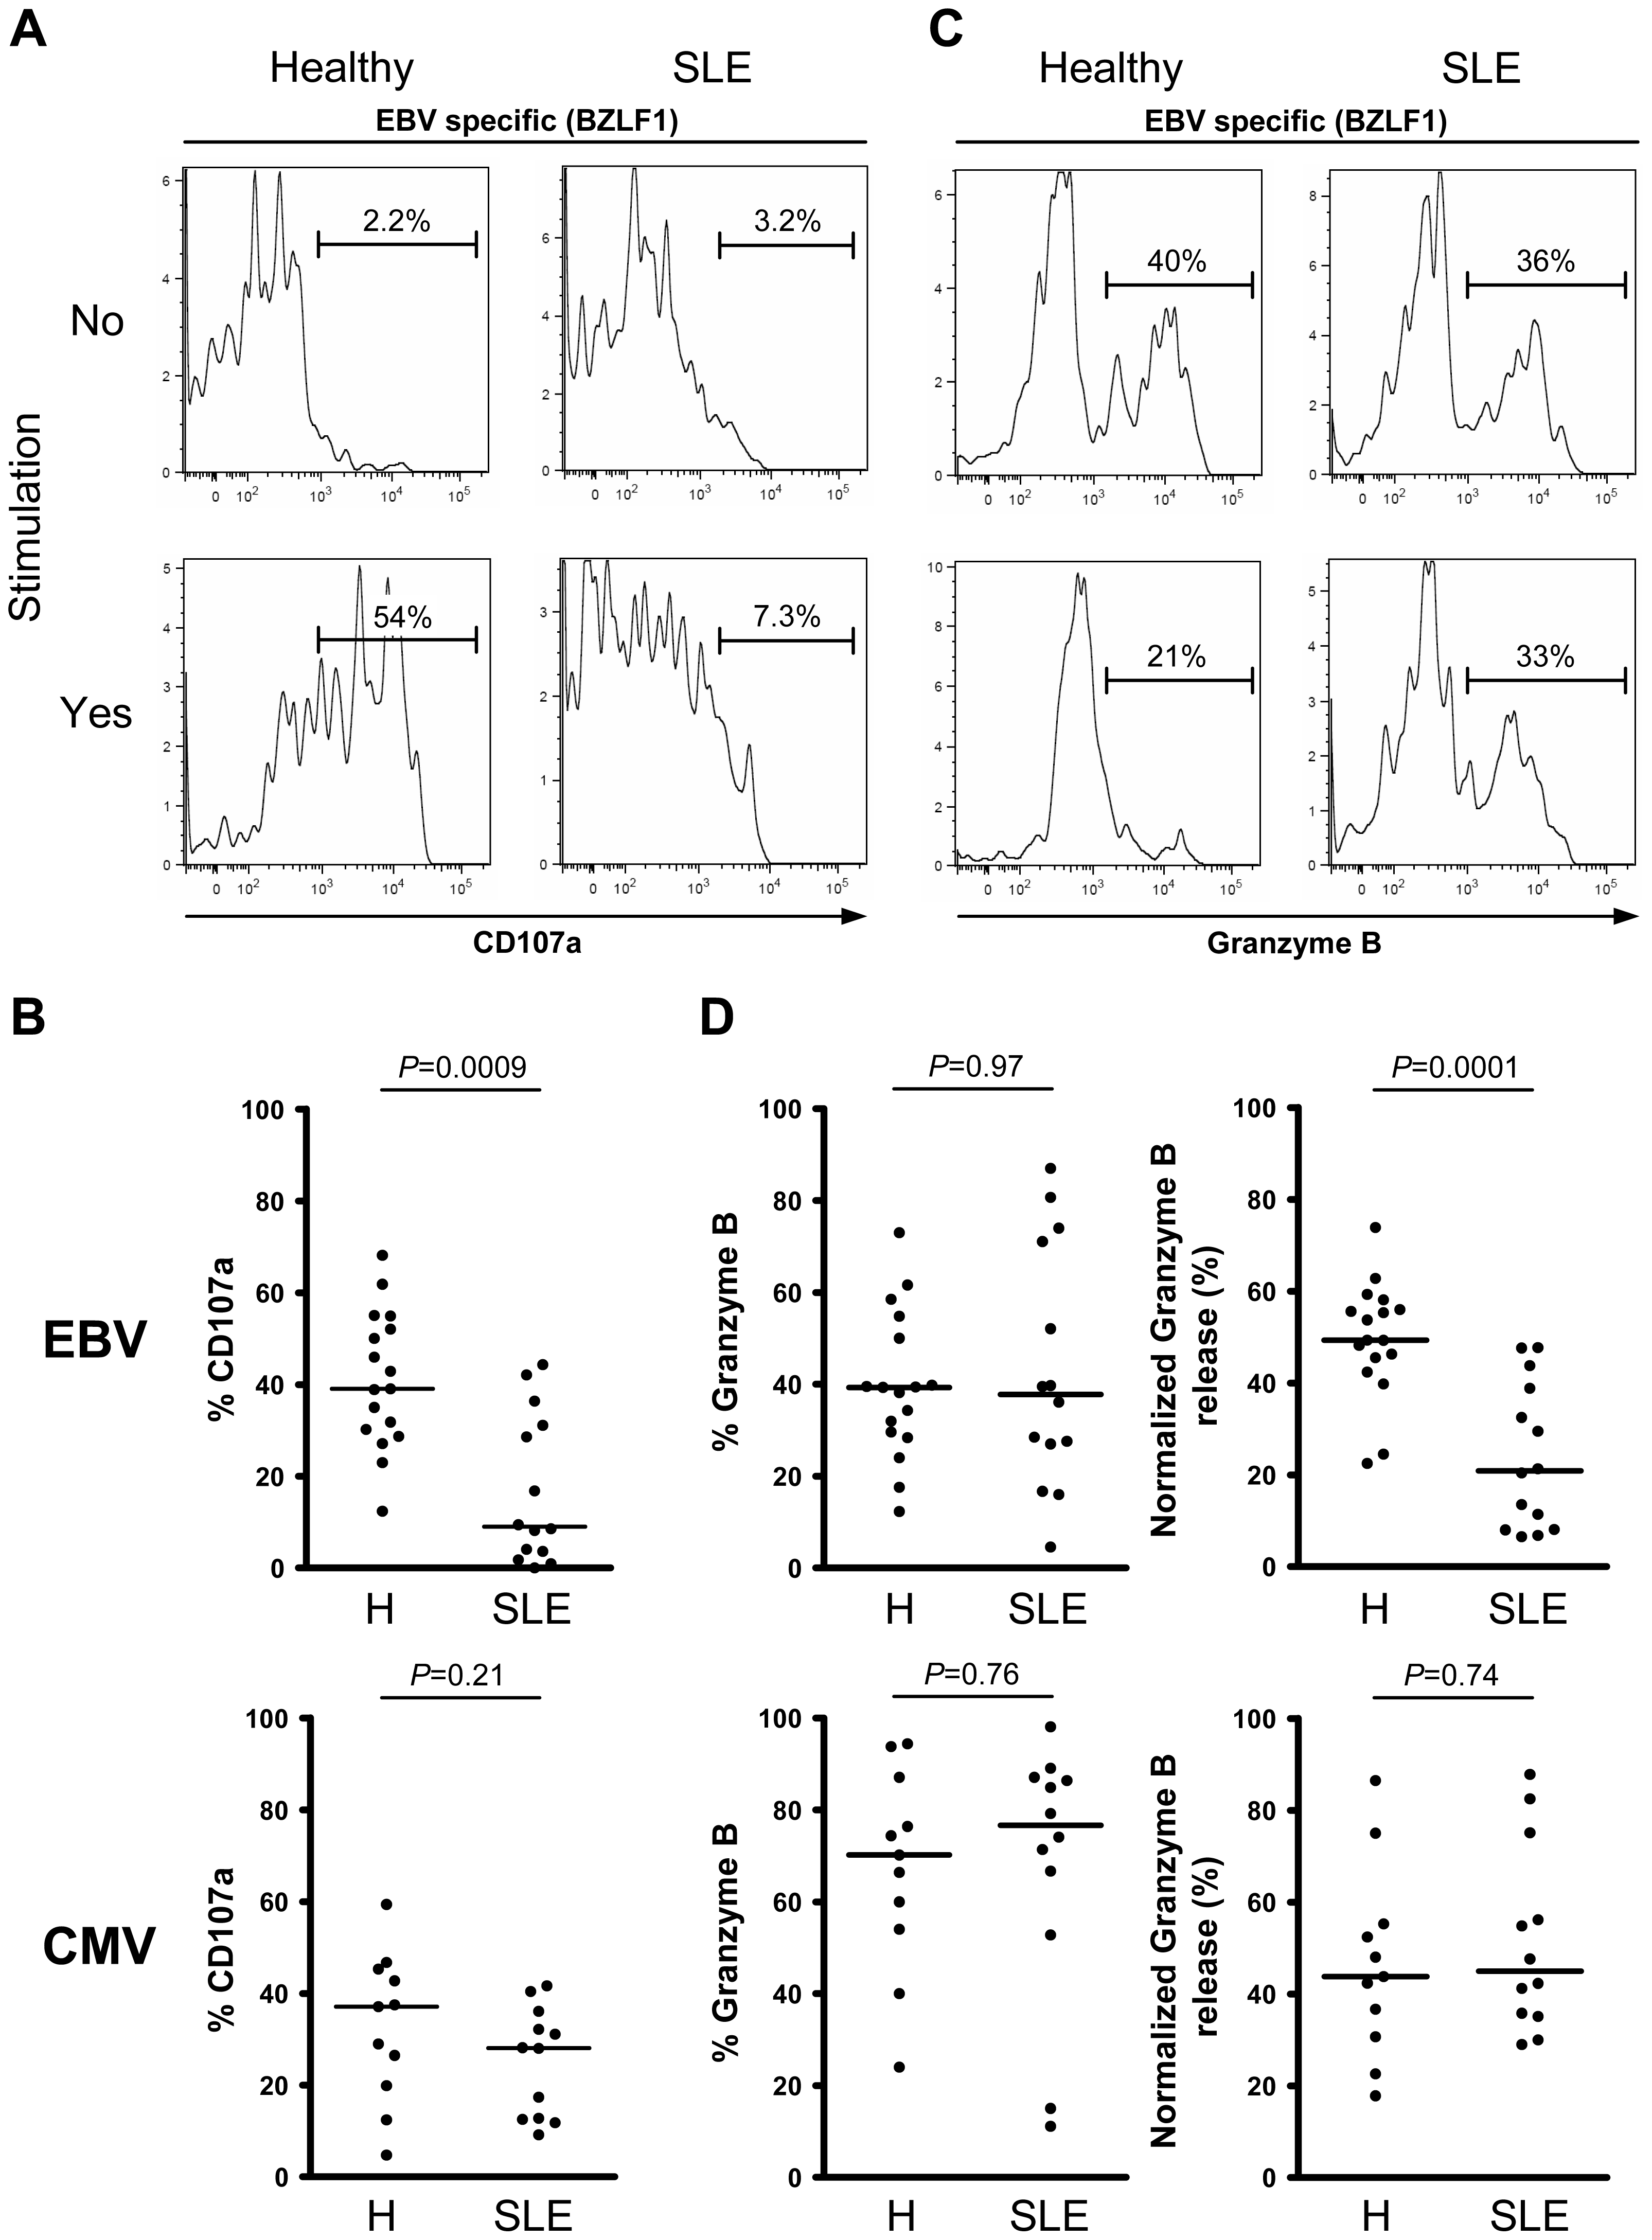 Lytic EBV antigen-specific T cells from SLE patients are impaired in their ability to release their cytotoxic granule content.